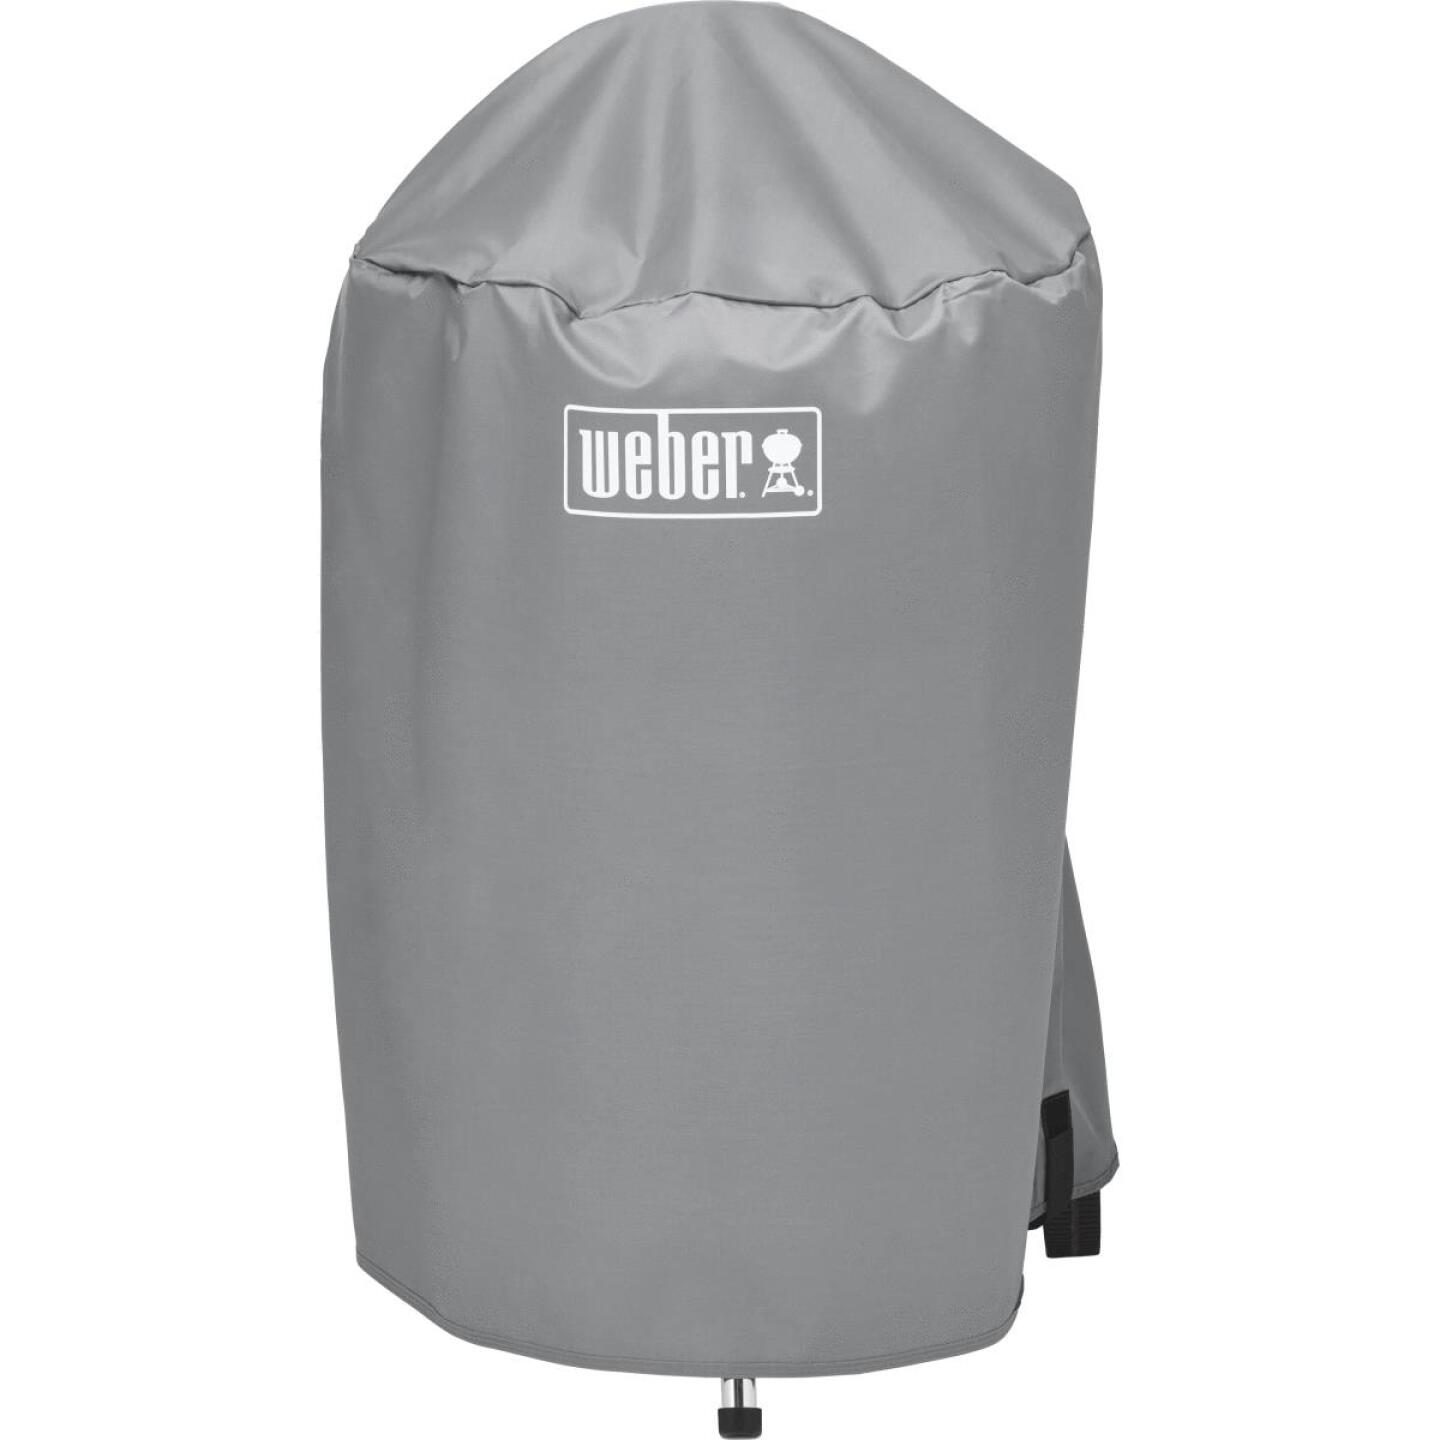 Weber 18 In. Gray Vinyl Kettle Grill Cover Image 3